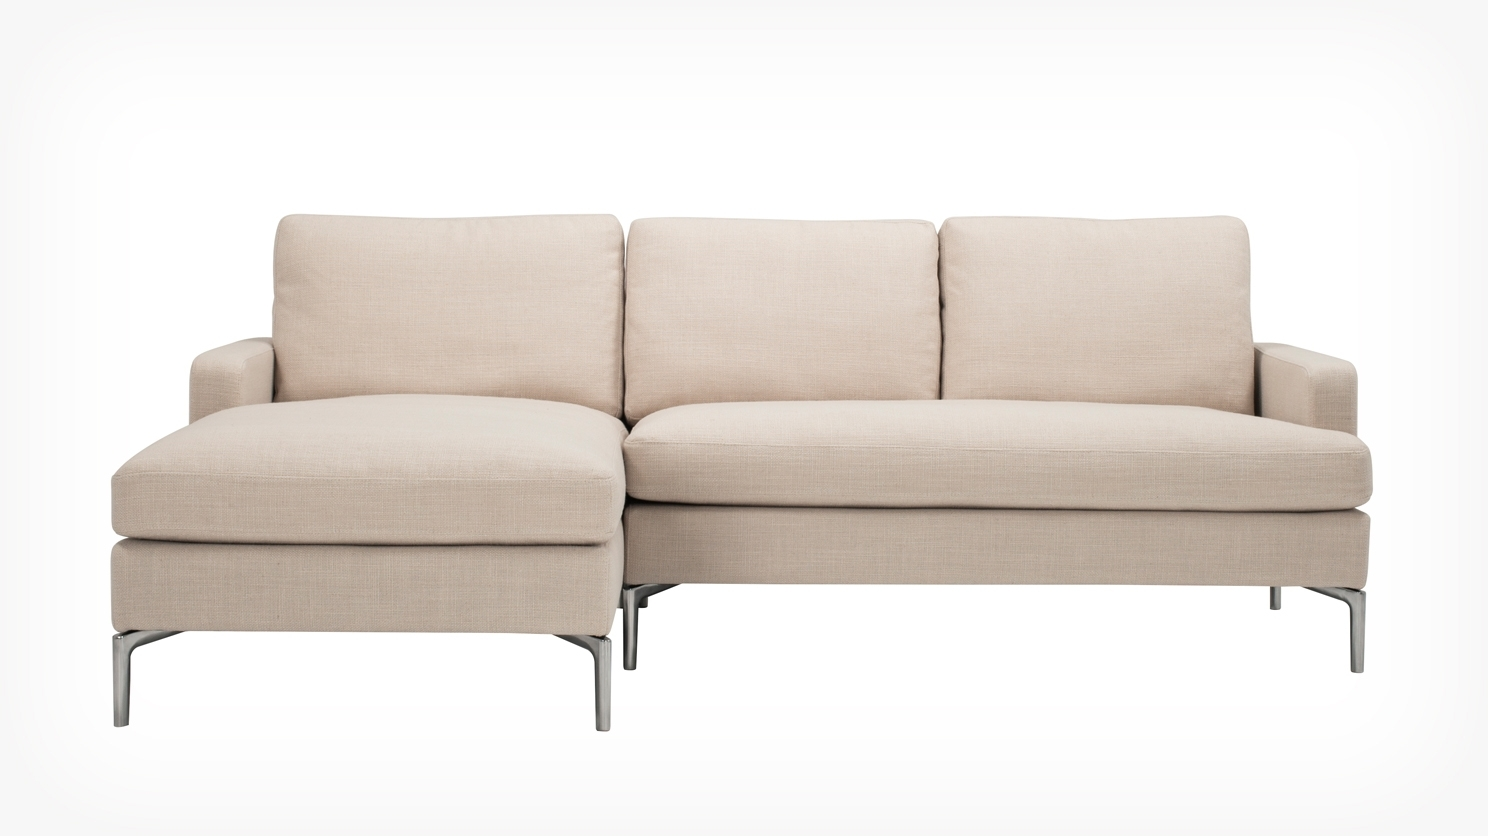 Eq3 | Eve Classic 2 Piece Sectional Sofa With Chaise – Fabric Throughout Eq3 Sectional Sofas (View 7 of 10)